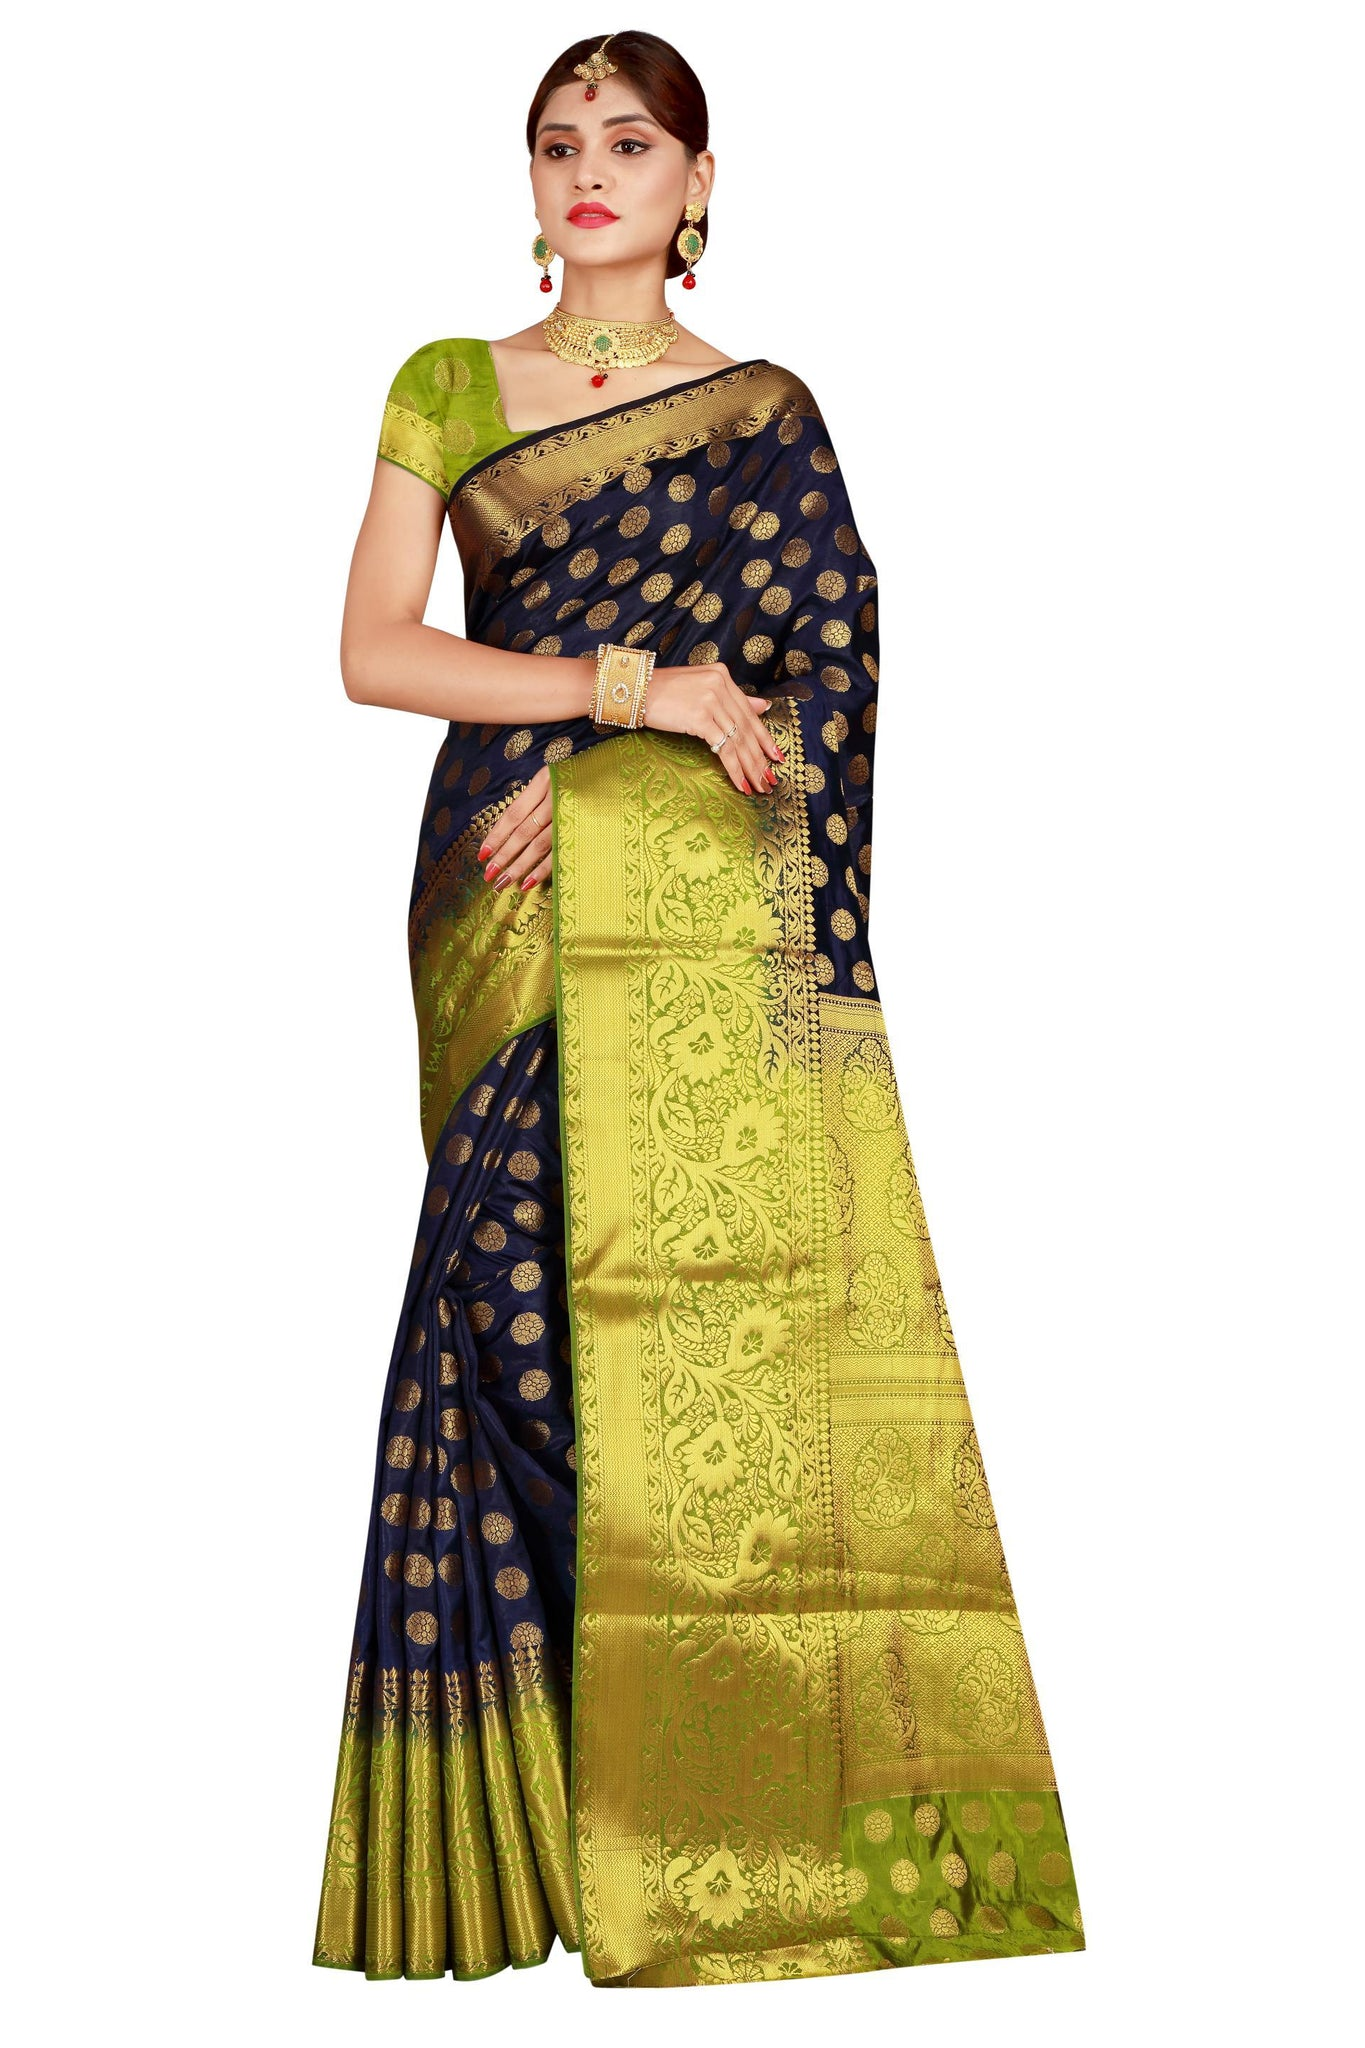 Jasan Jall Blue Color Pure Banarasi Silk Saree